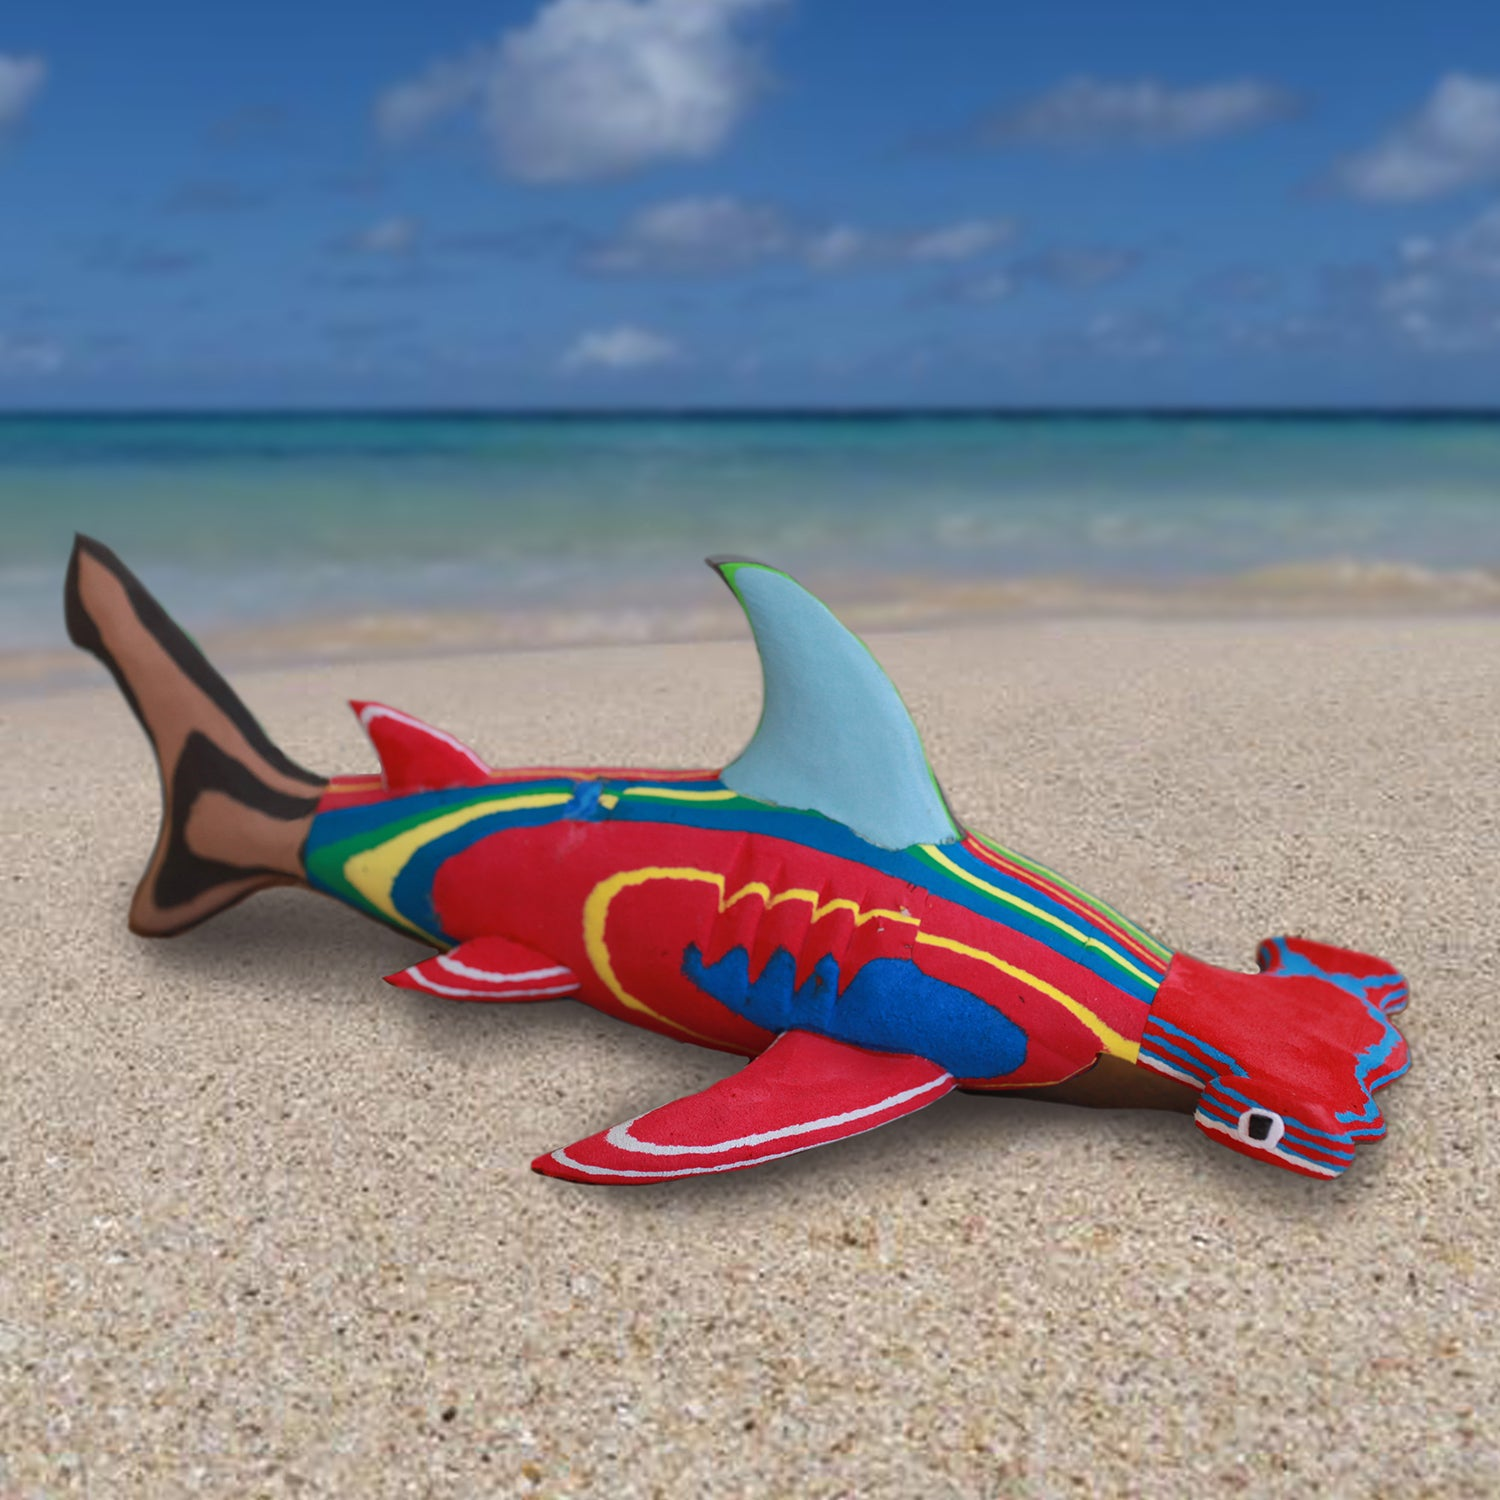 Flip-Flop Hammerhead Shark | Upcycled, Recycled, Repurposed, Reimagined | Changing Tides